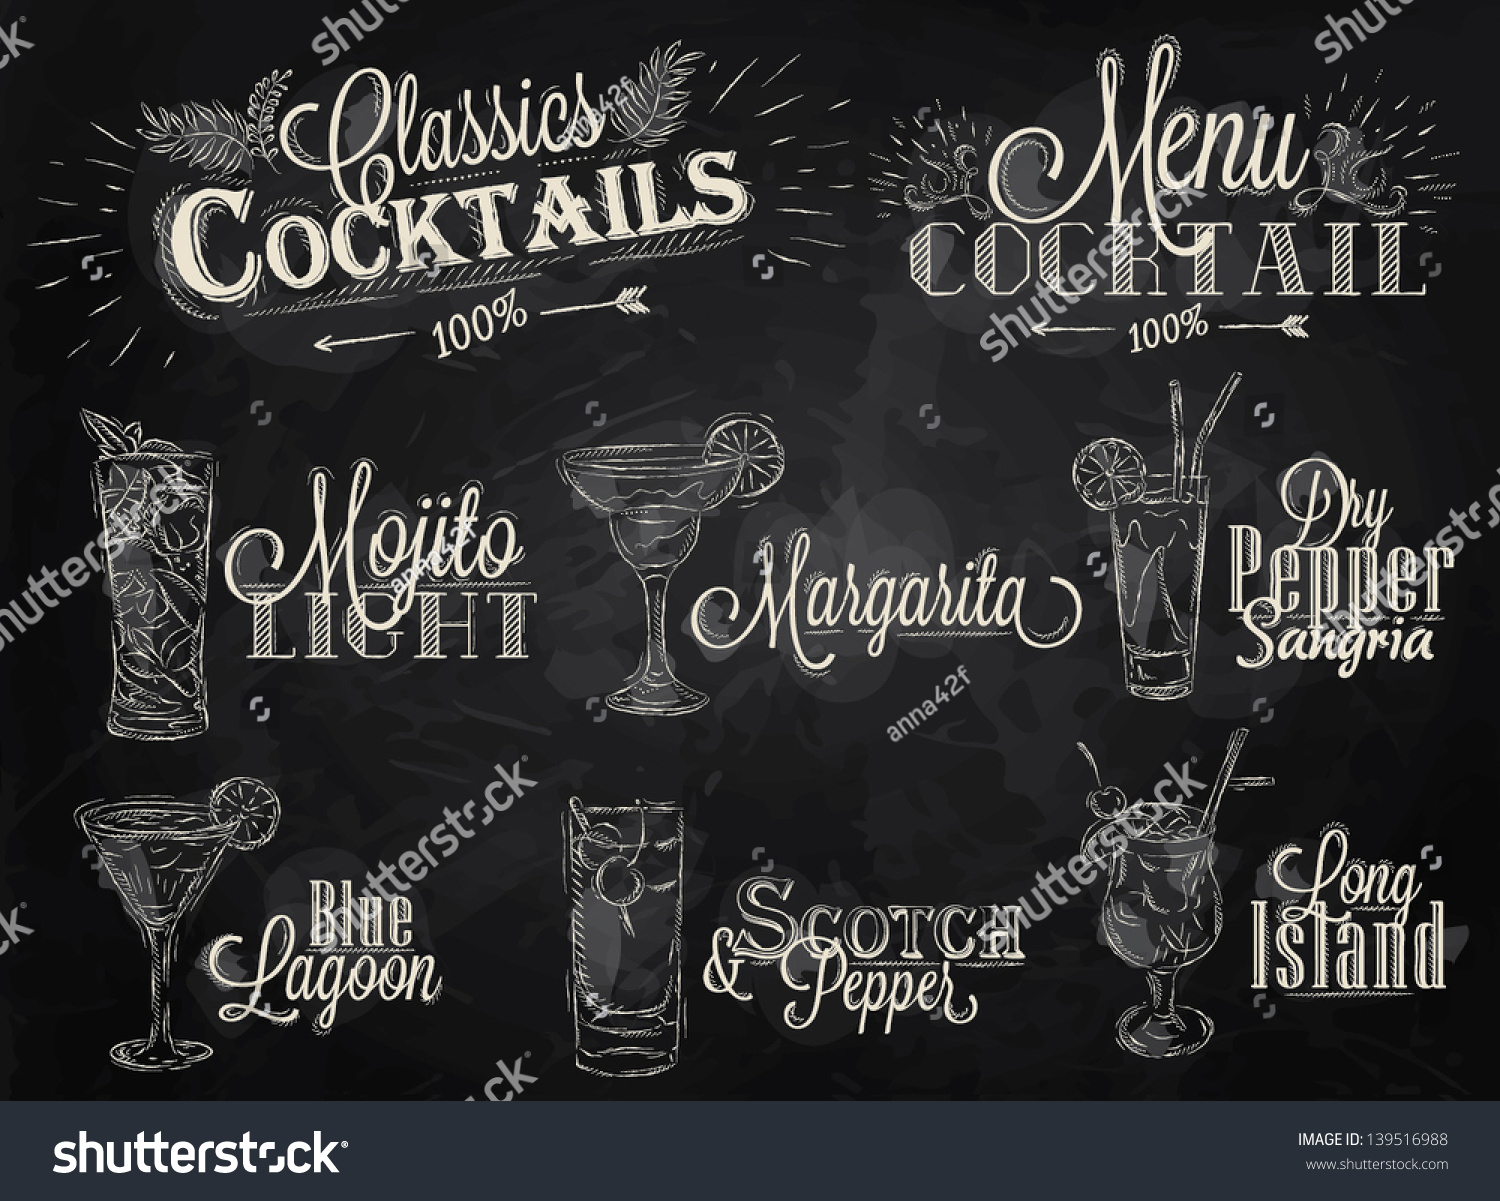 Blackboard Drinks Menu Frame Vector Free